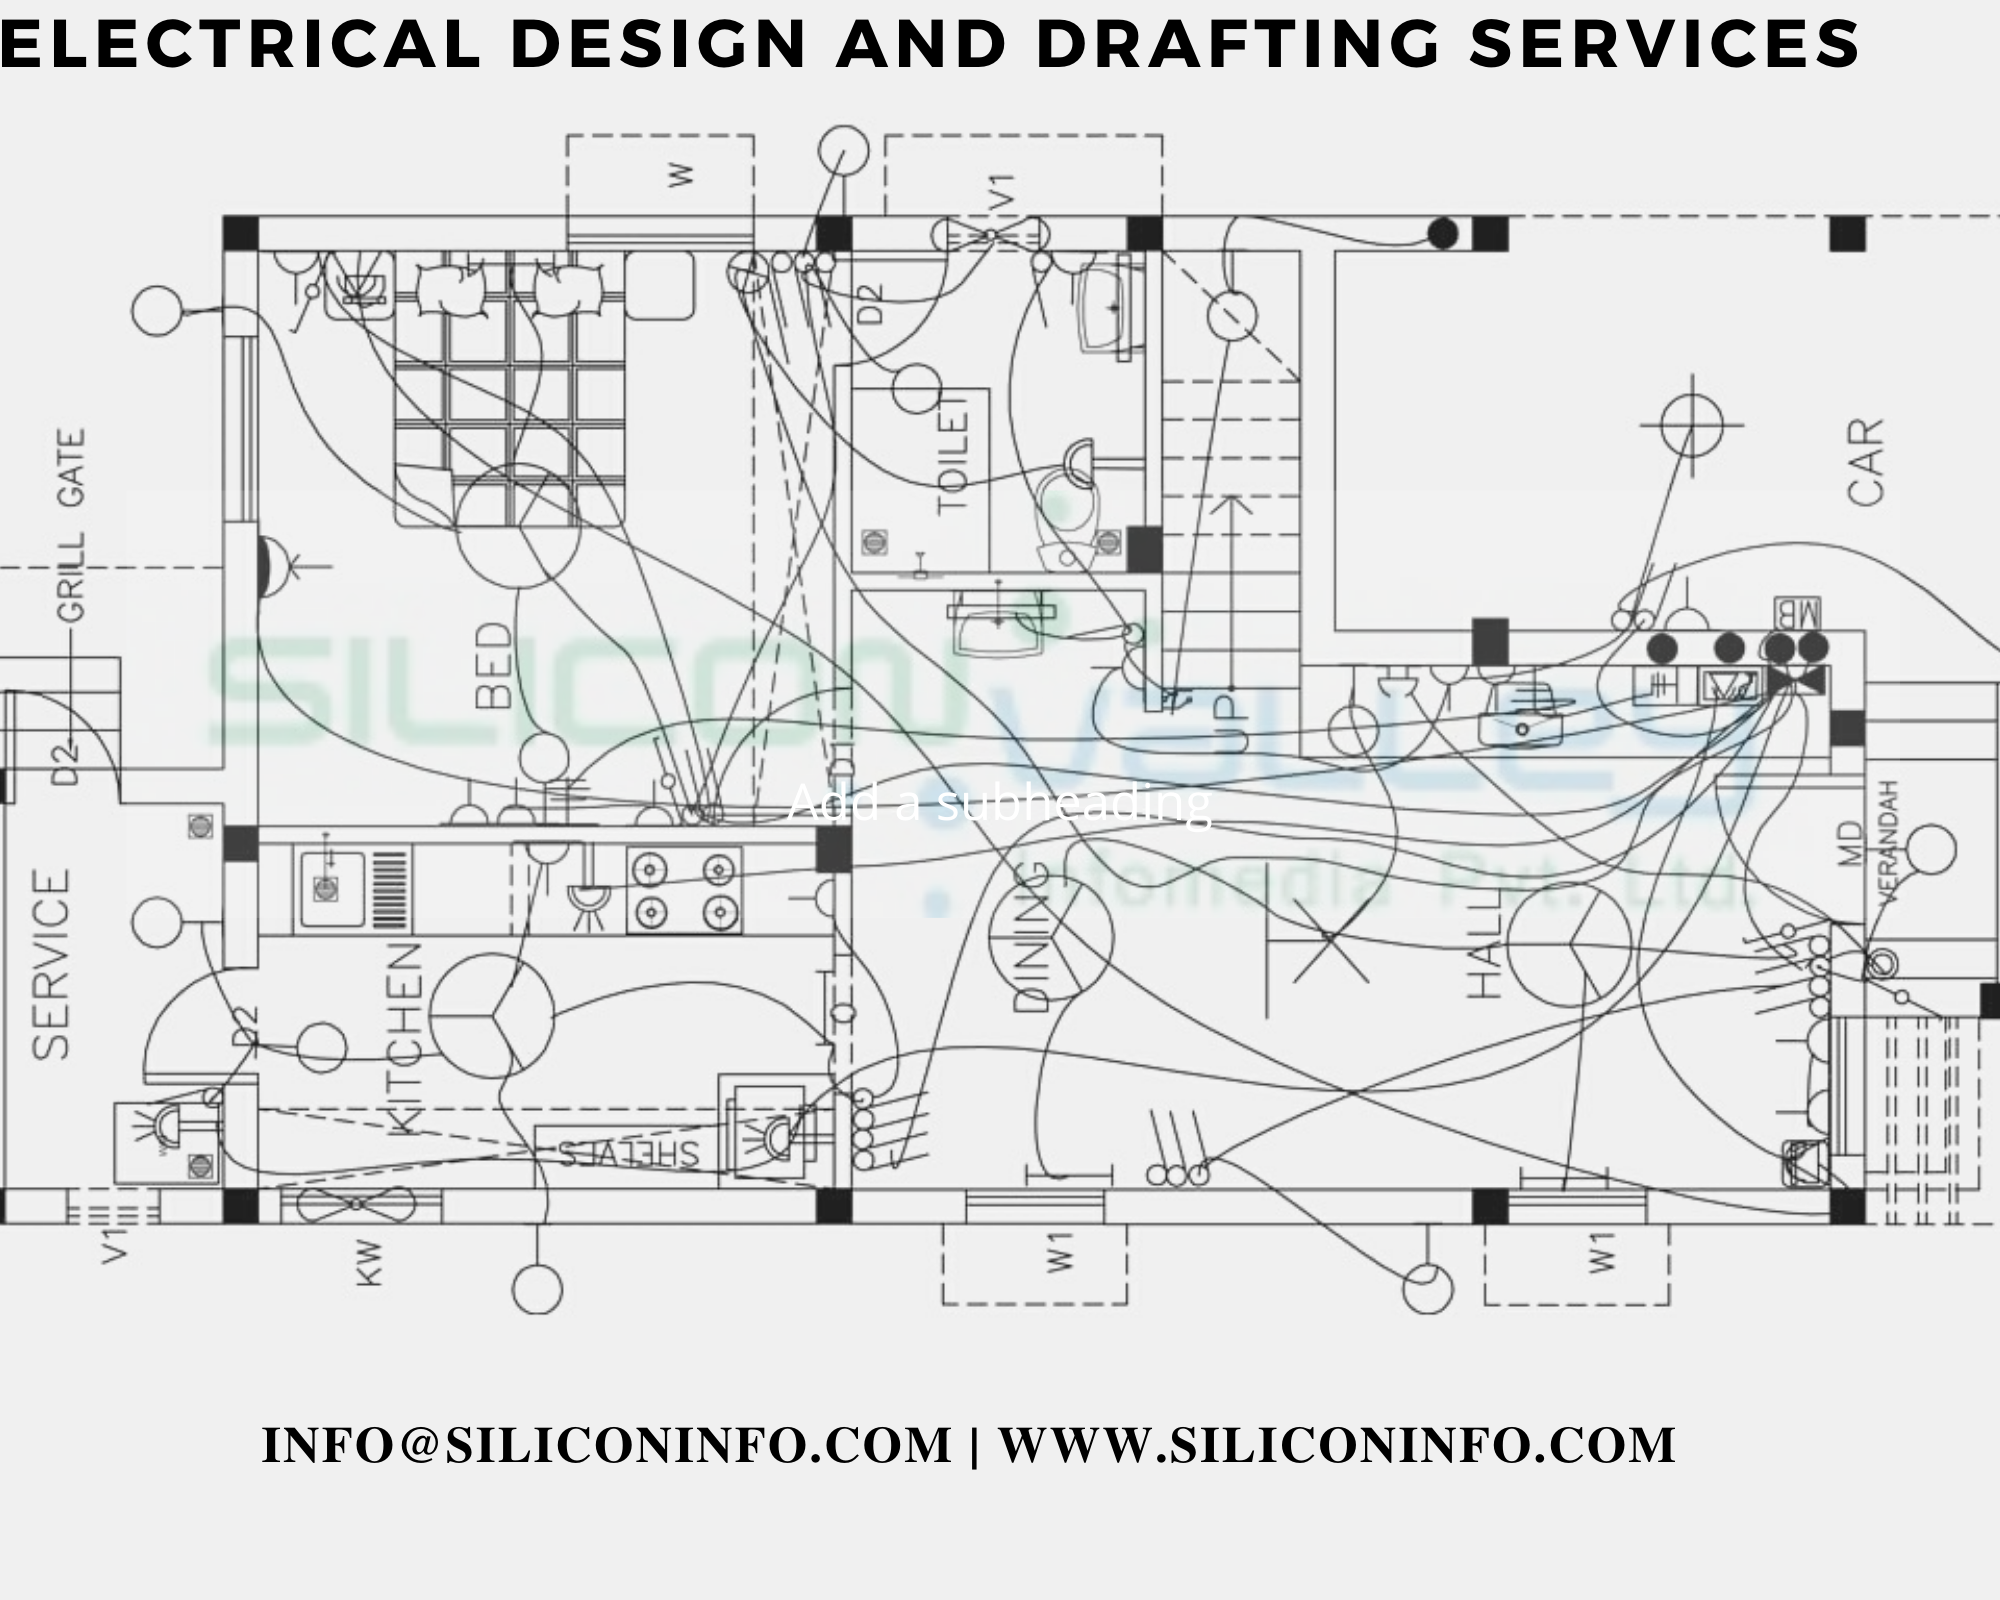 Pin On Electrical Engineering Services